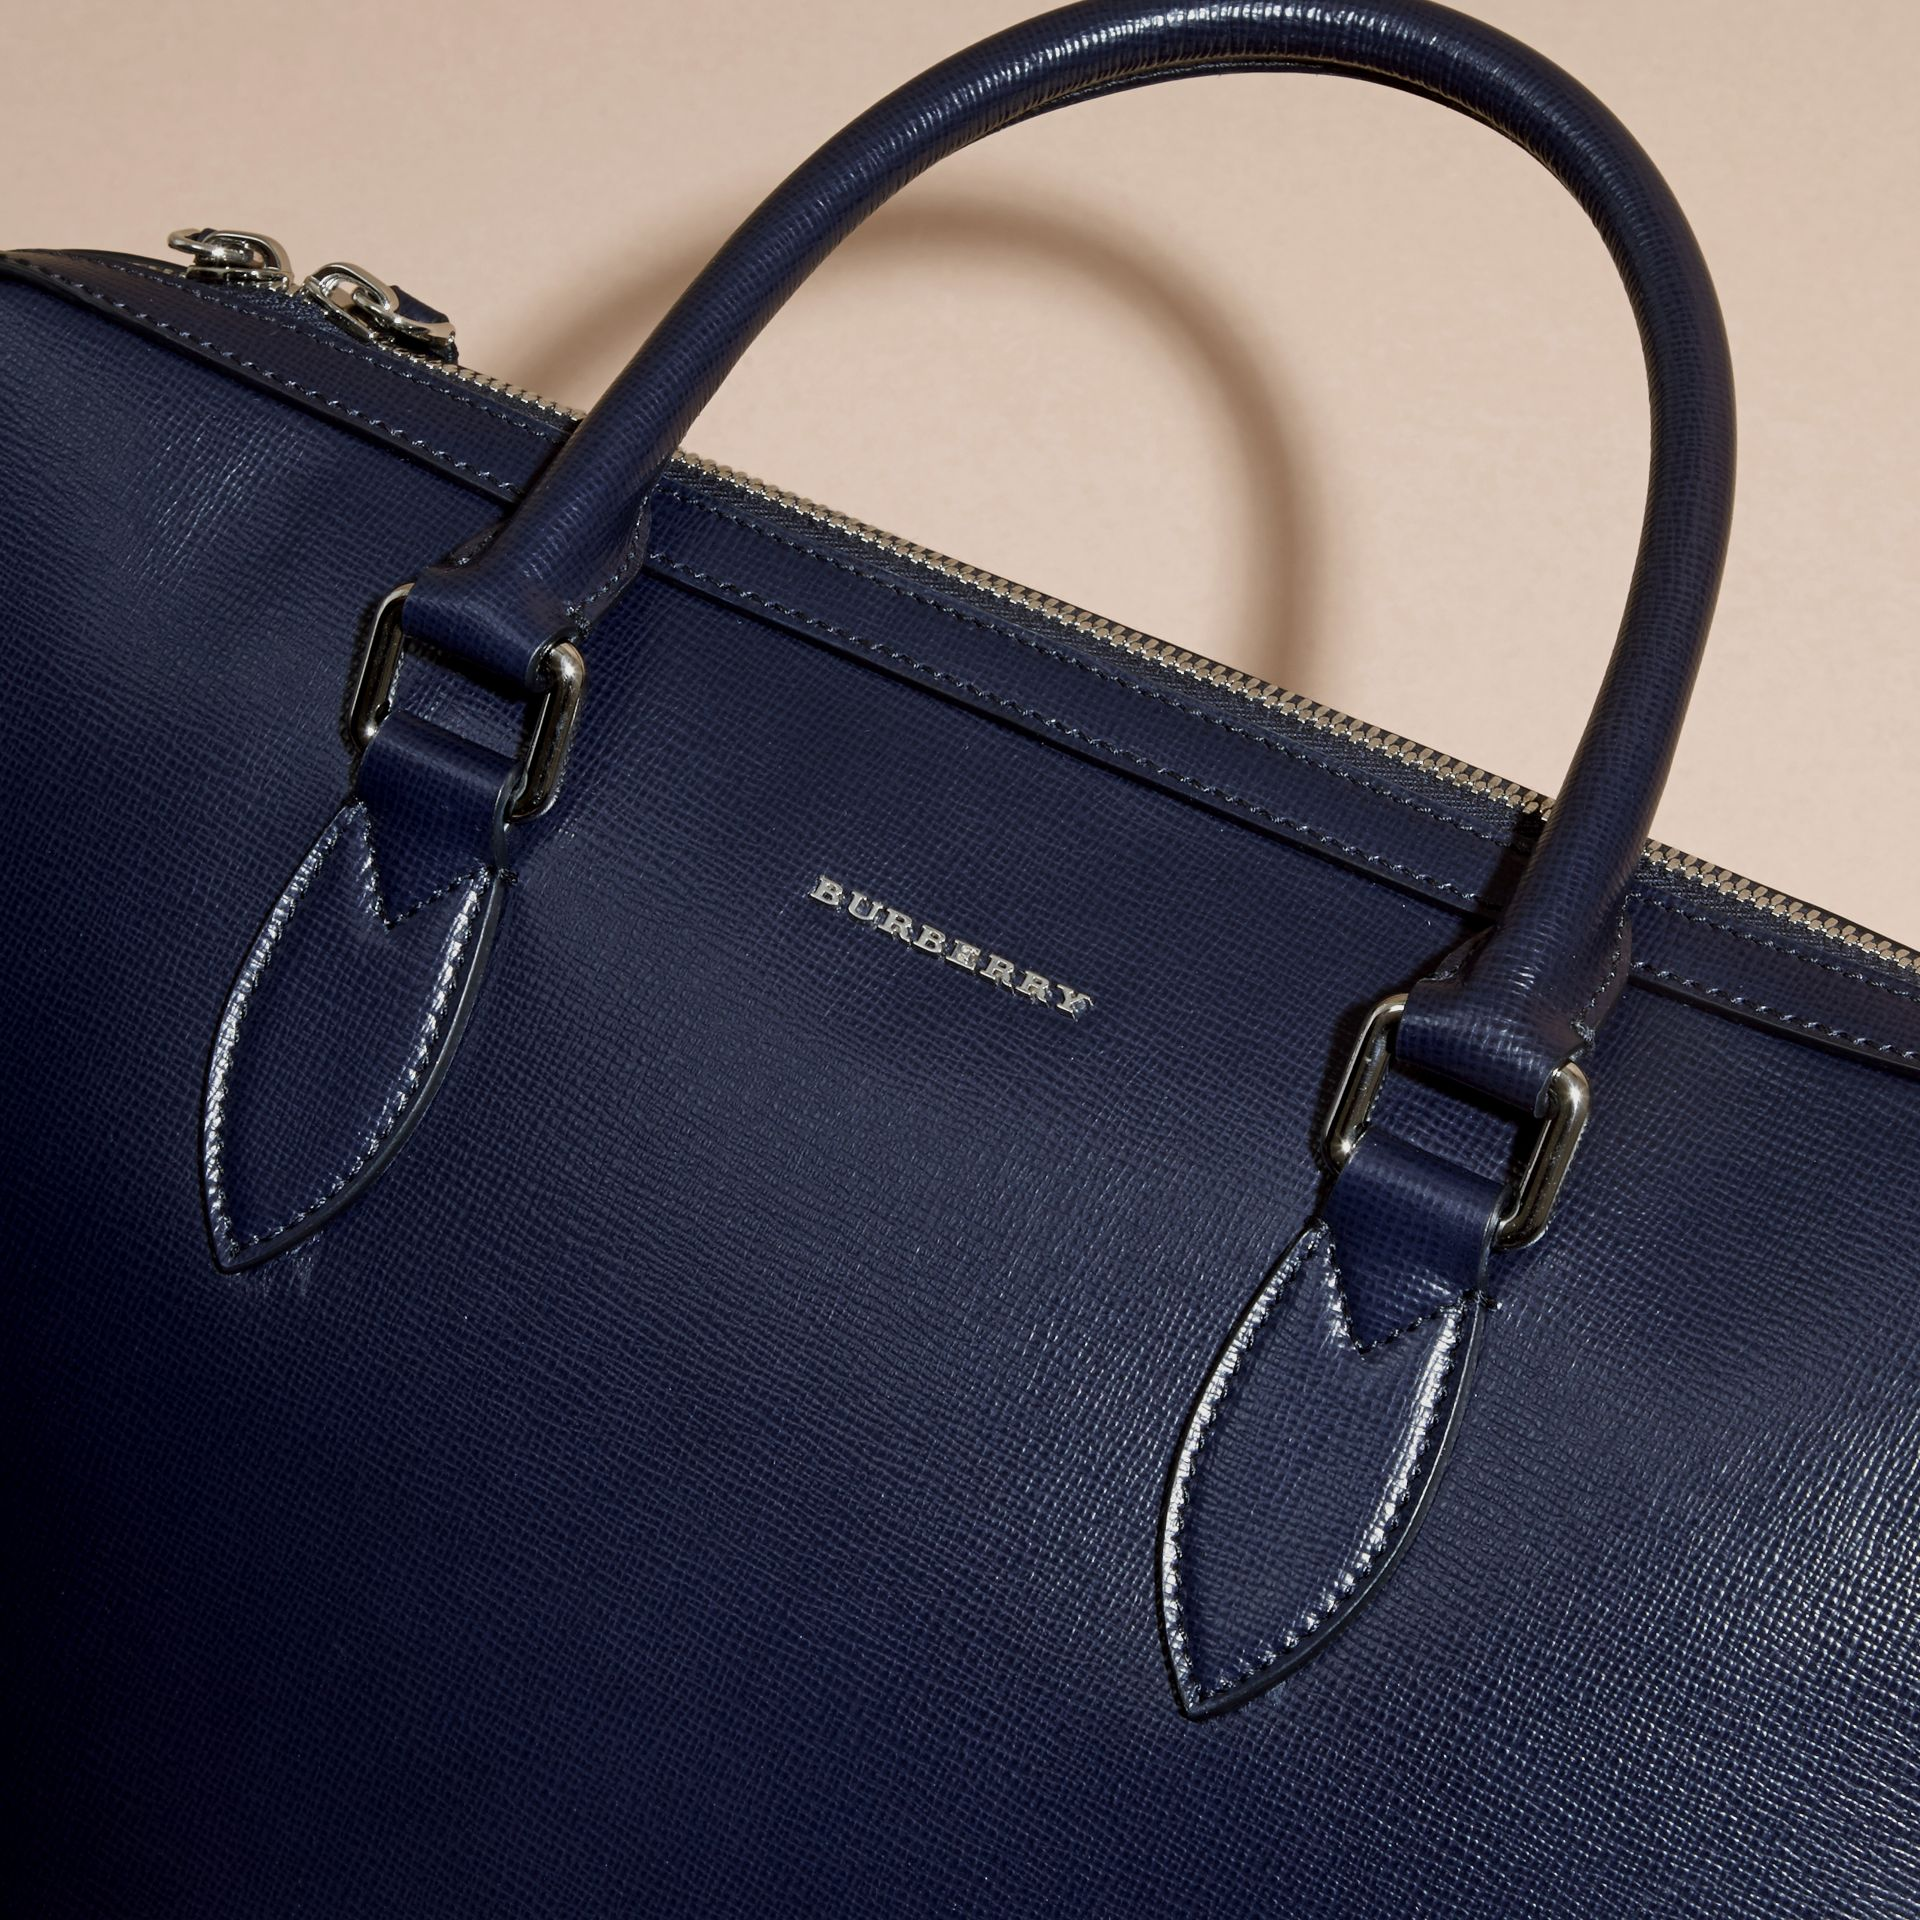 Dark navy/mineral blue The Slim Barrow in Panelled London Leather Dark Navy/mineral Blue - gallery image 2